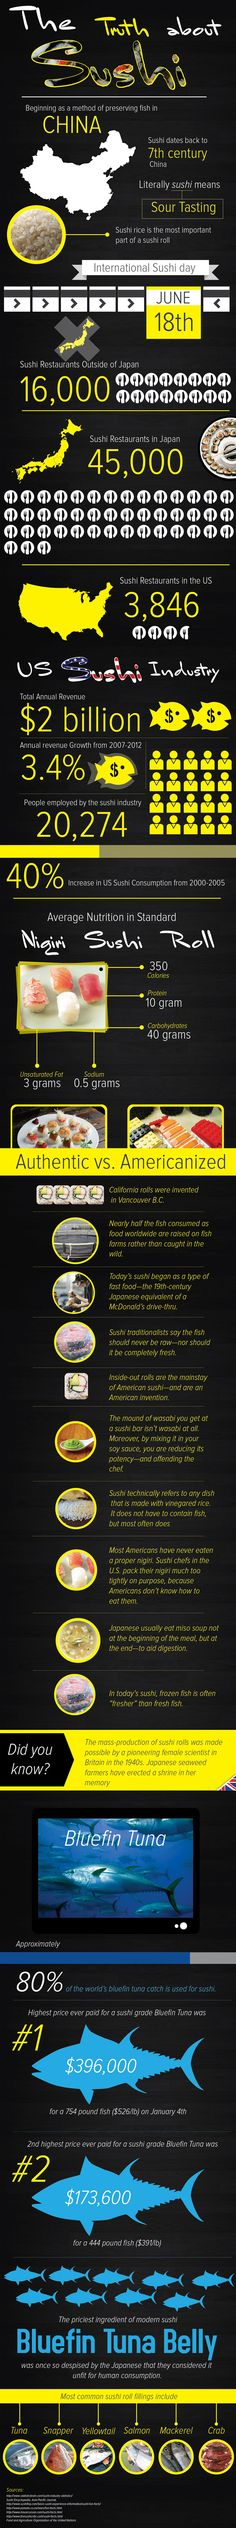 Sushi. We know where it comes from but do we really know its history...take a look at all the history behind Sushi.